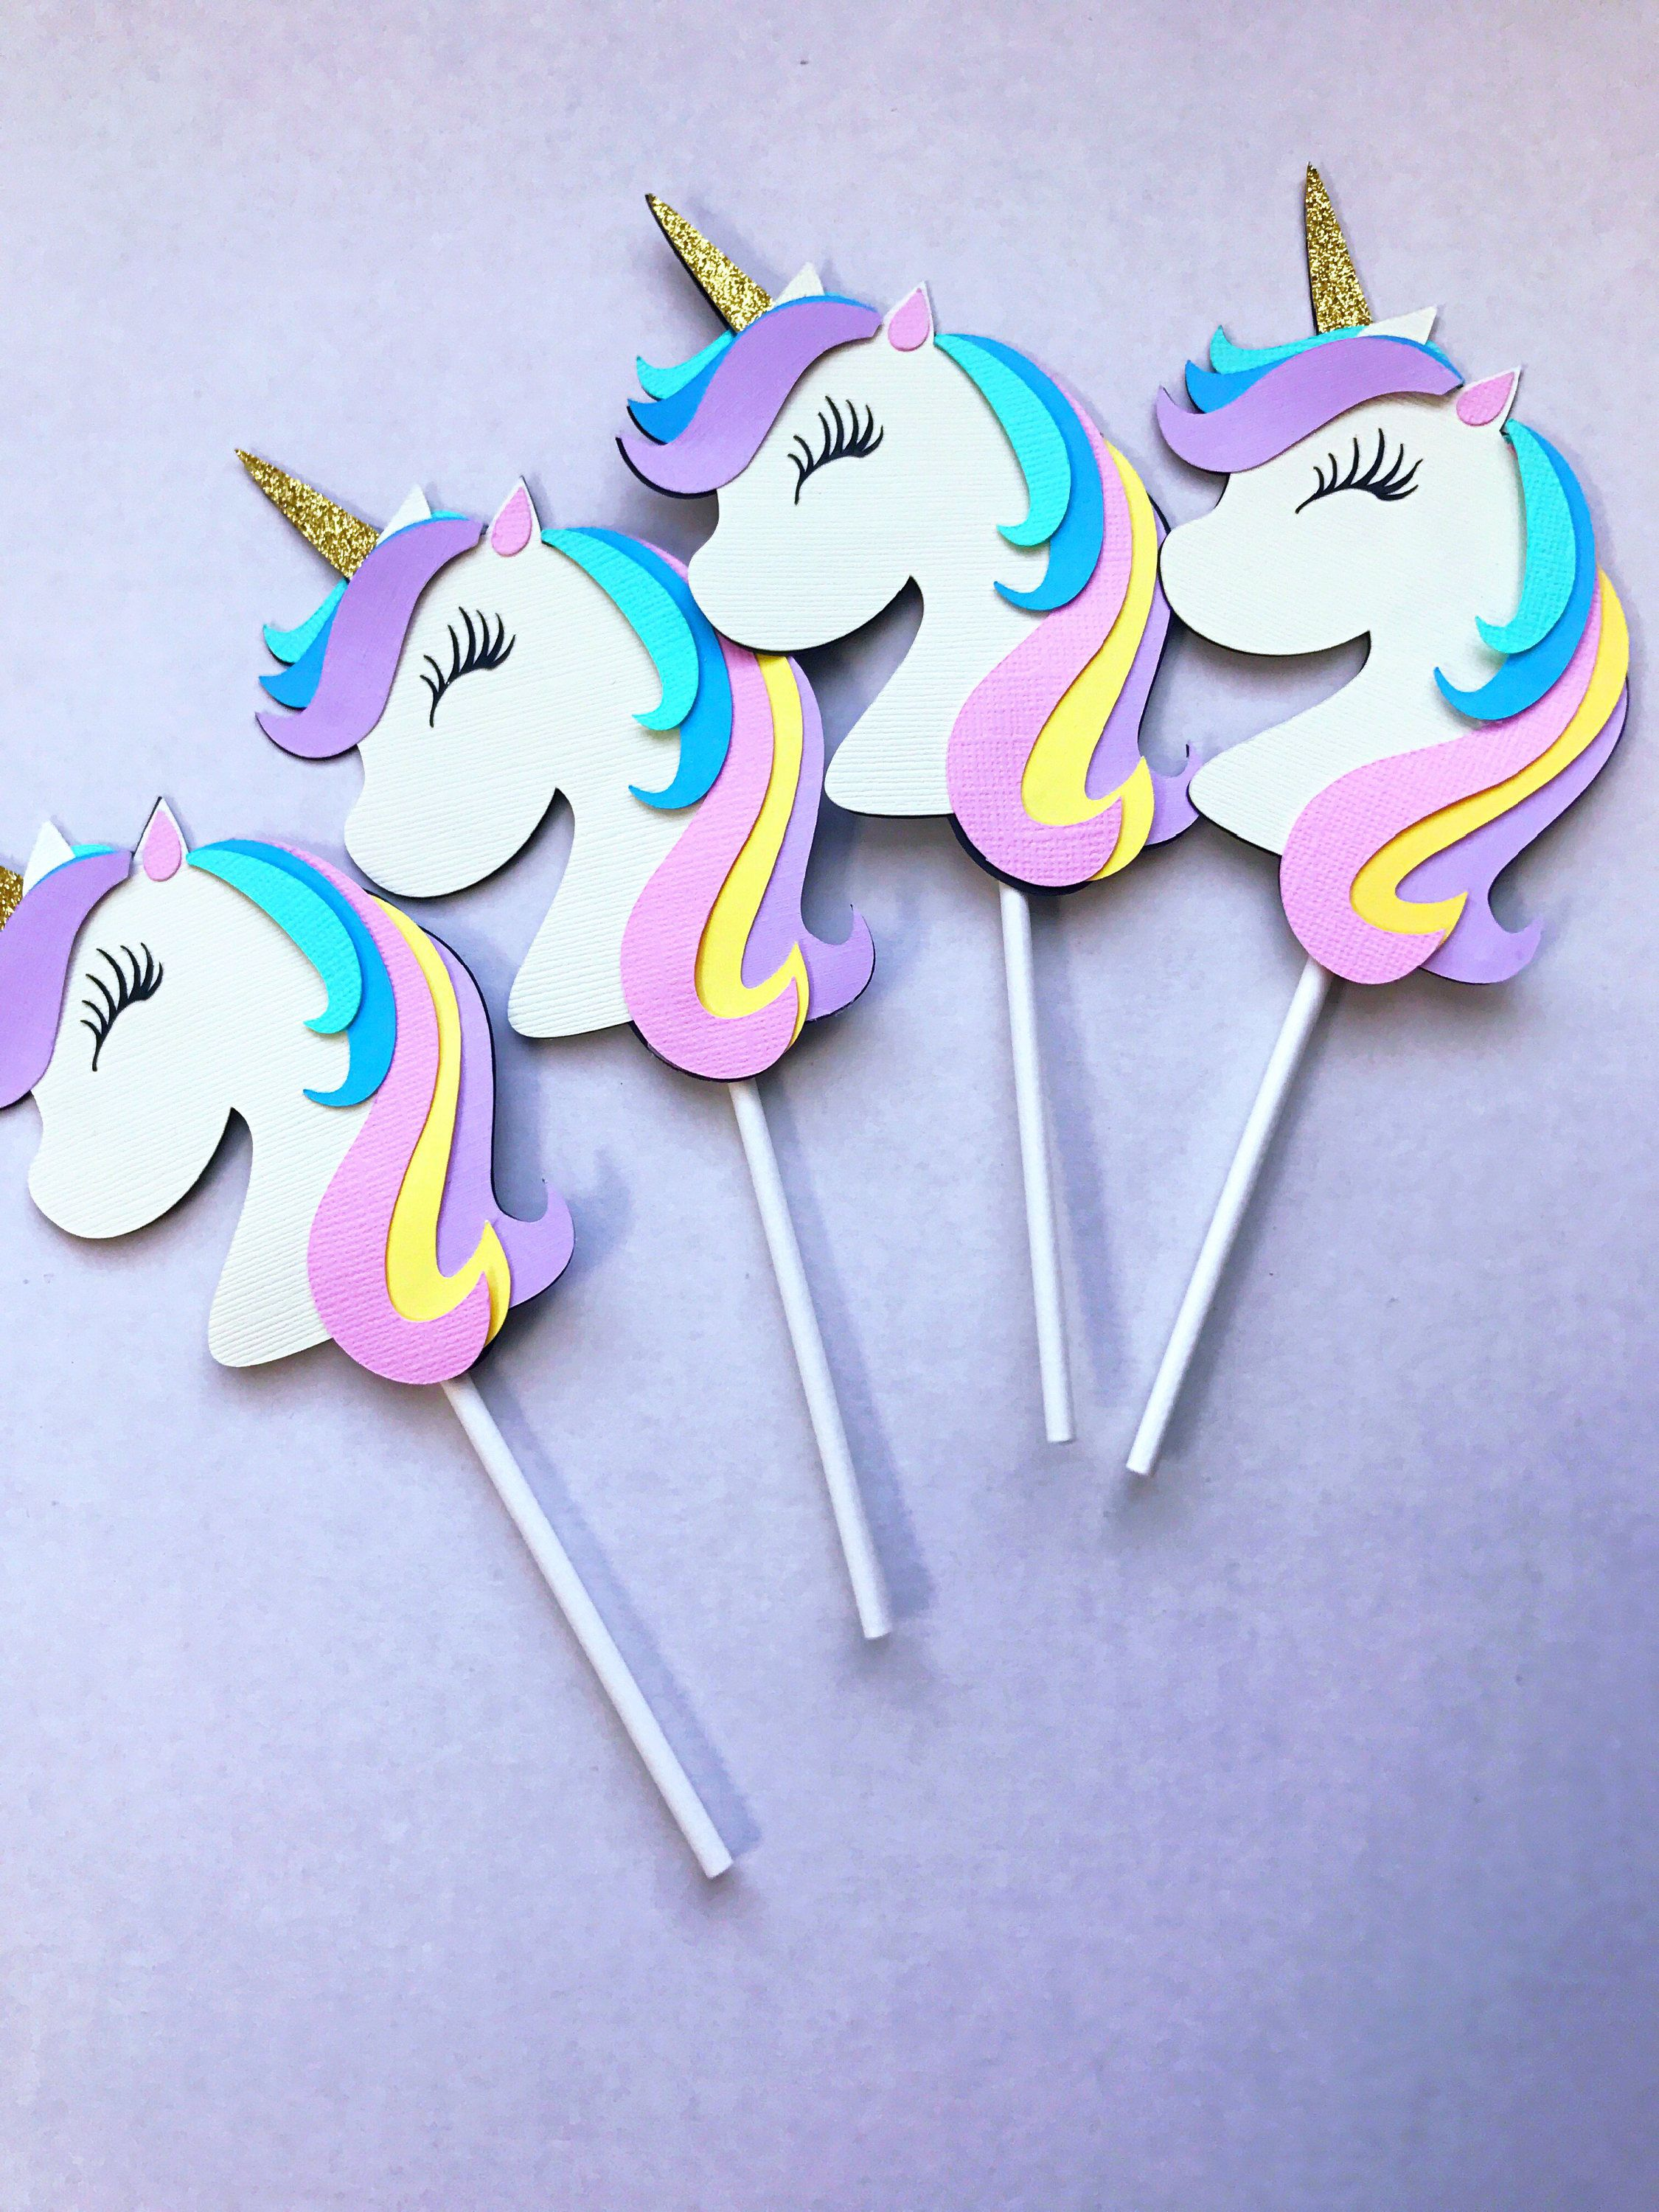 Having A Magical Unicorn Themed Party You Have To Include These Super Adorable Cupcake